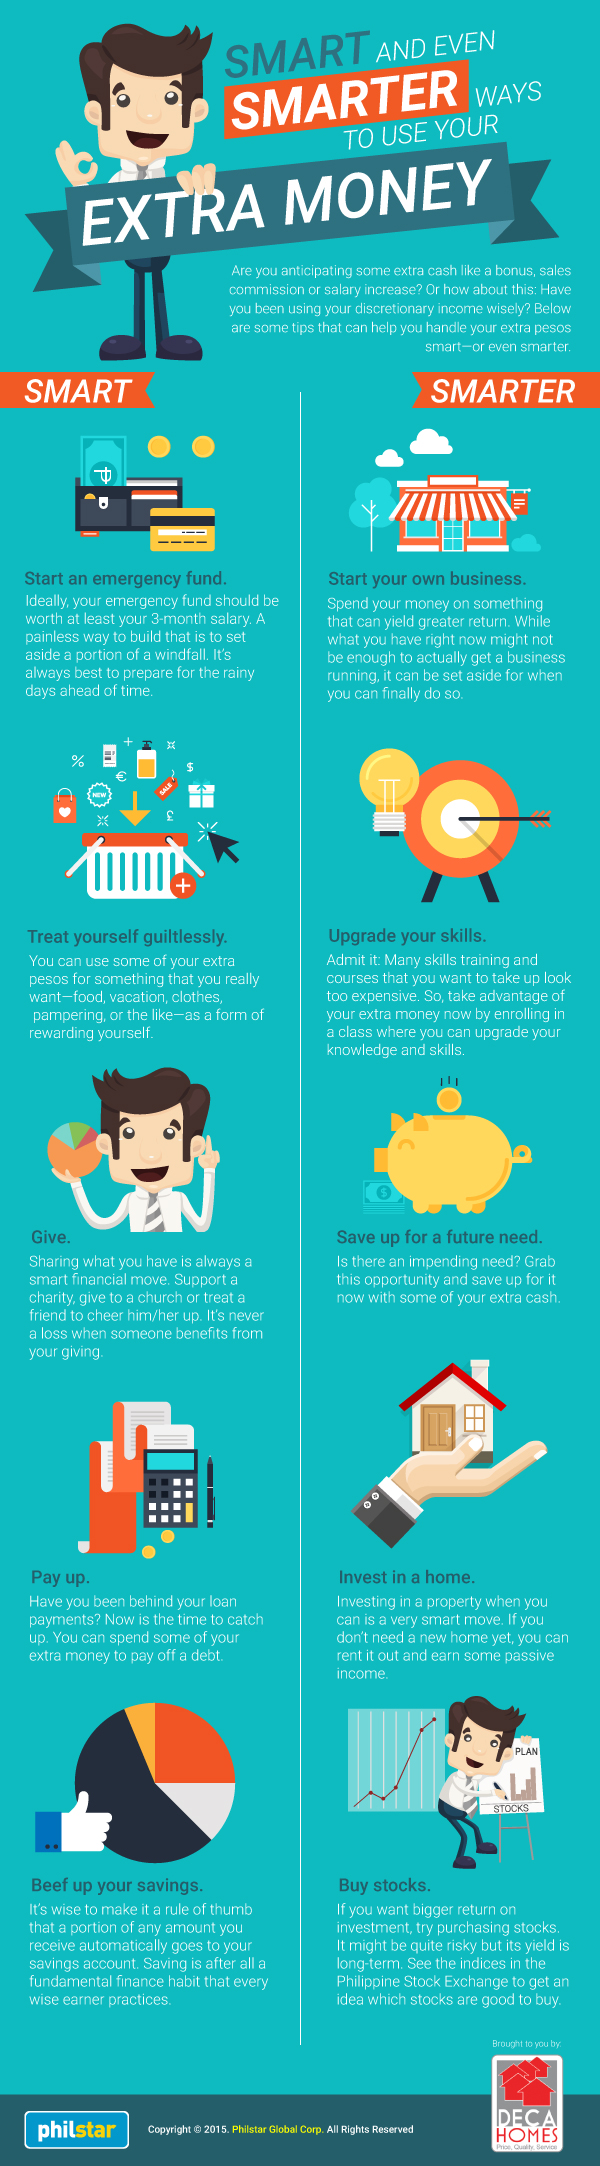 Smart--and even smarter--ways to use your extra money infographic